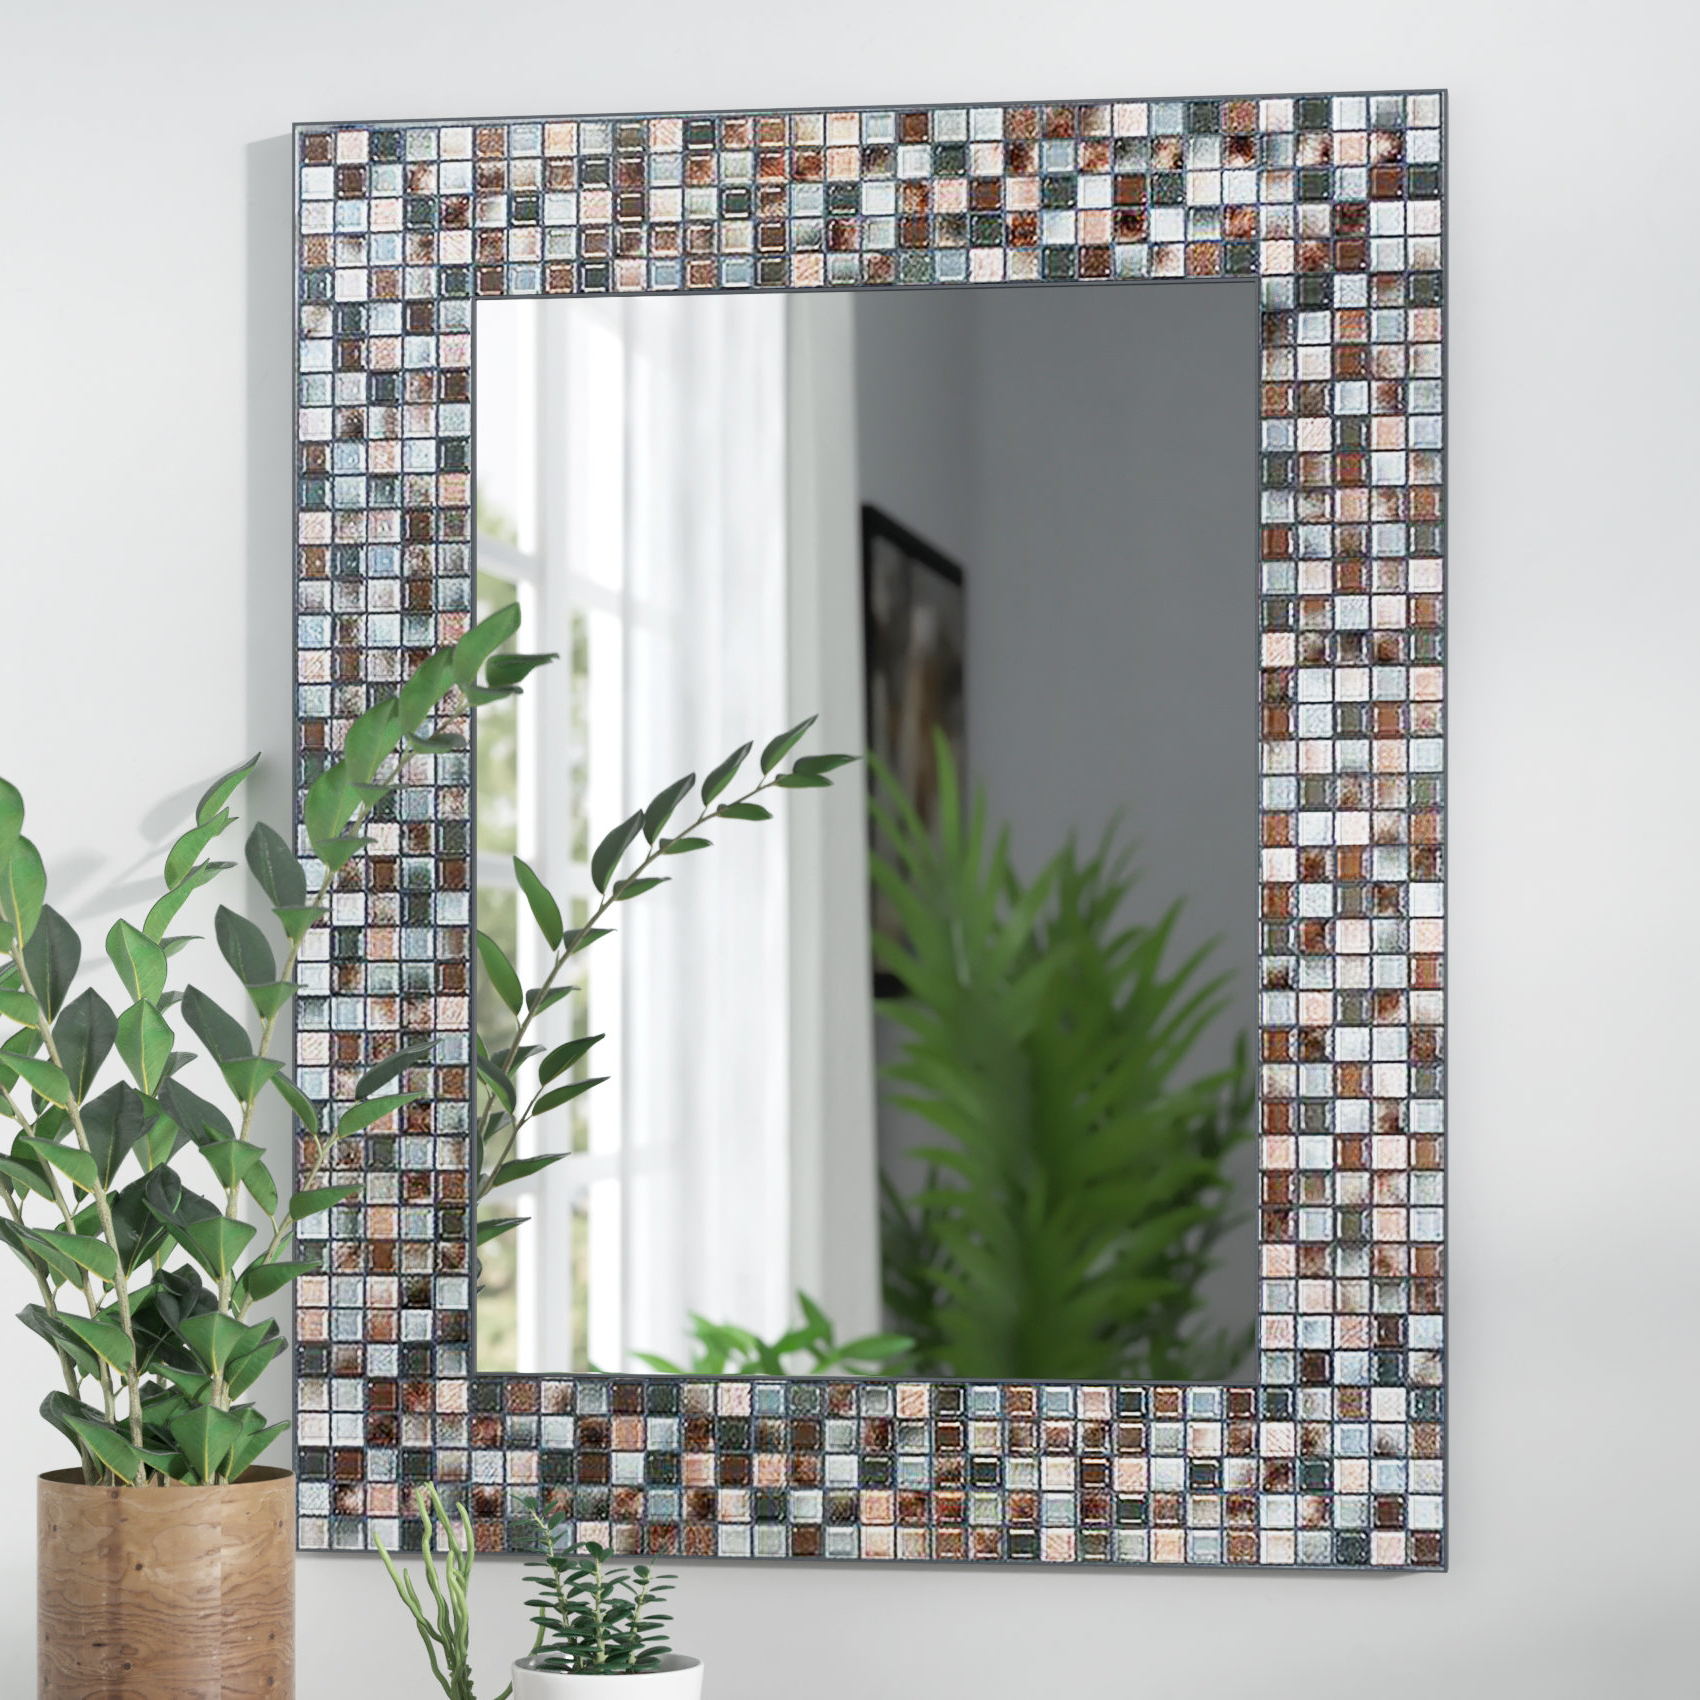 Tillman Mosaic Tile Accent Wall Mirror Intended For Most Recent Mosaic Wall Mirrors (Gallery 2 of 20)